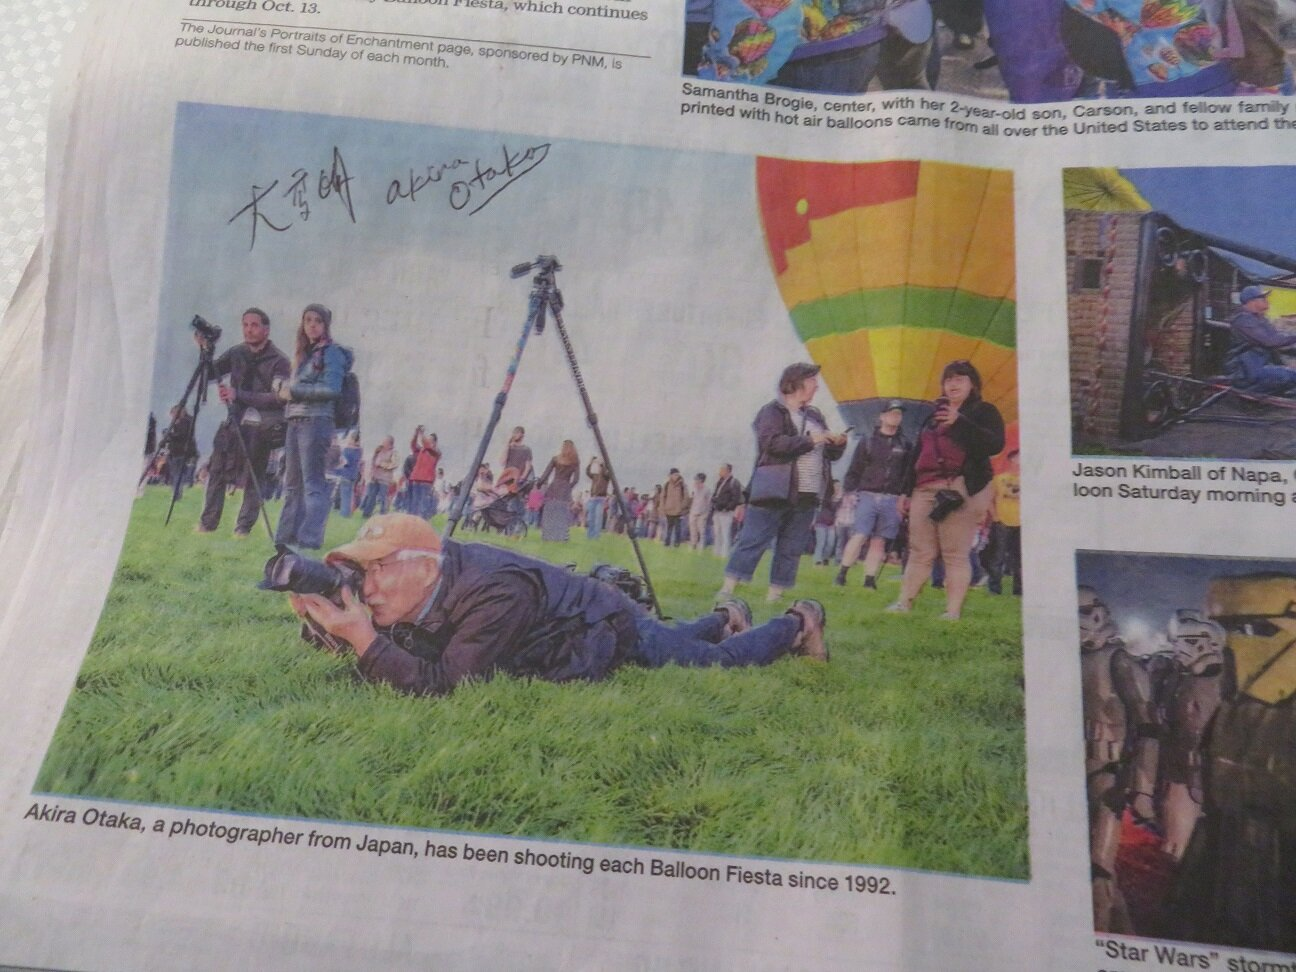 Mr. Otaka autographed the photo of him in the Sunday Journal —- Photo credit: R. Rosales/Jouranl